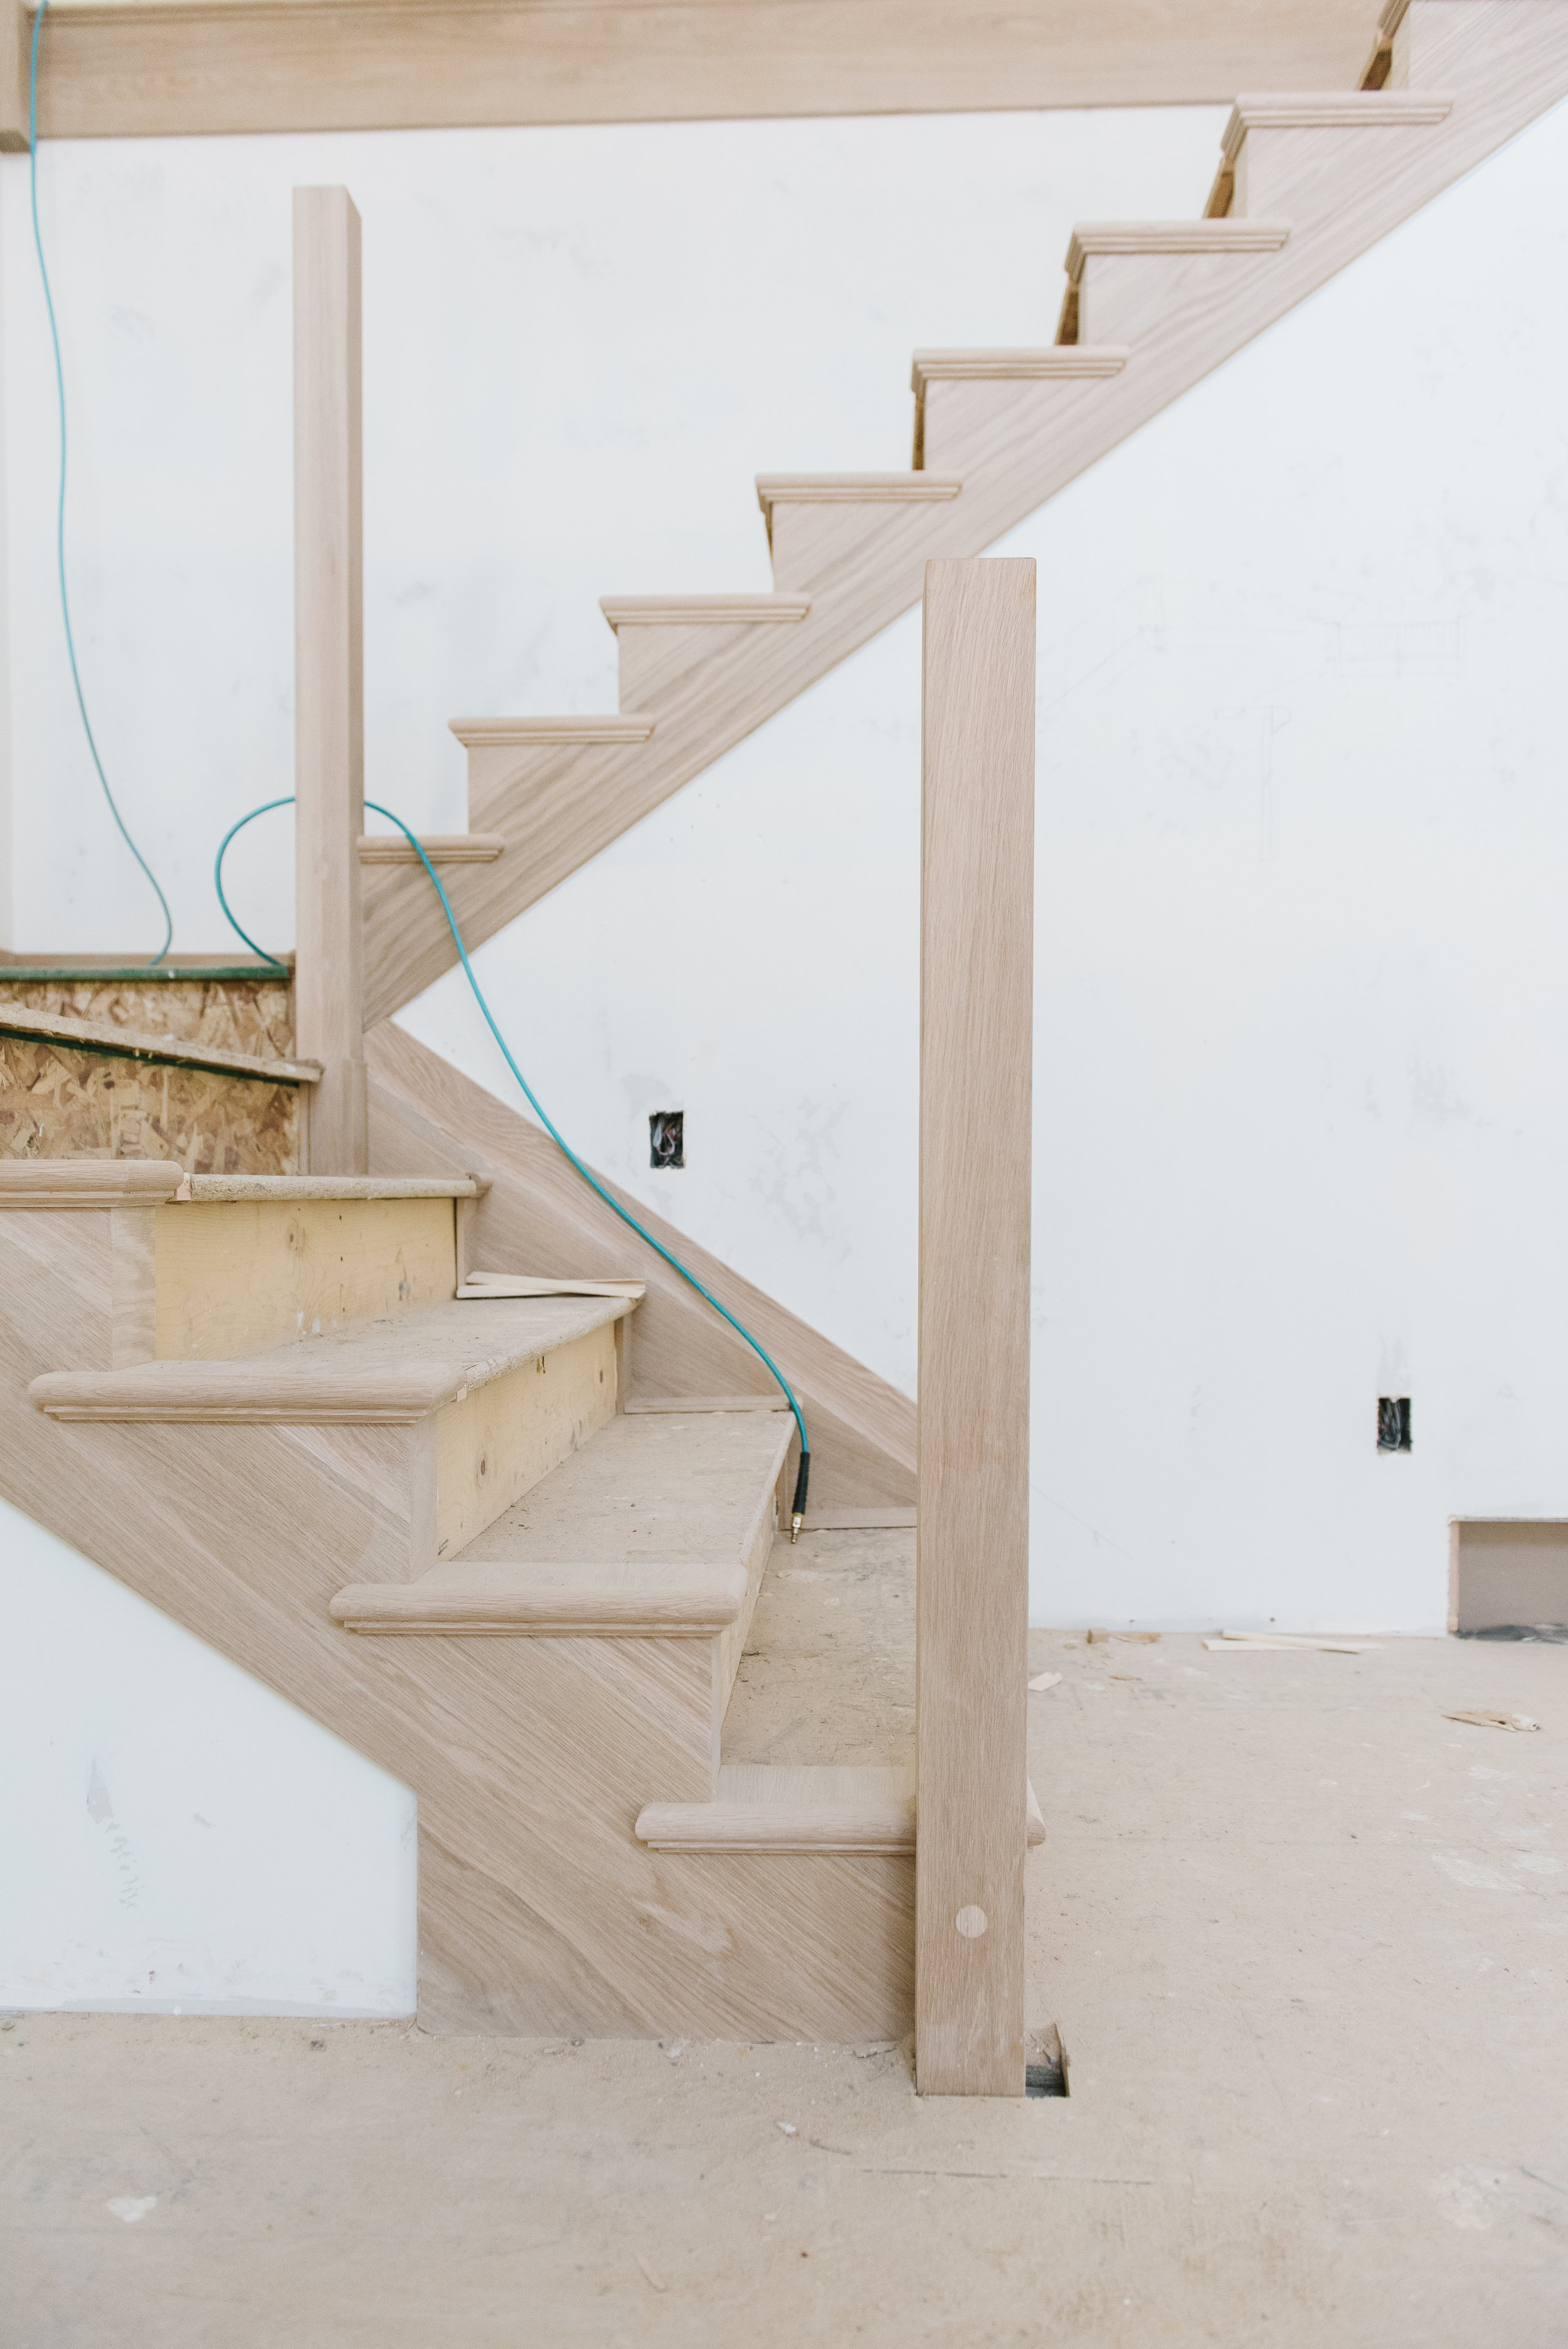 STAIRS LEADING TO LOFT